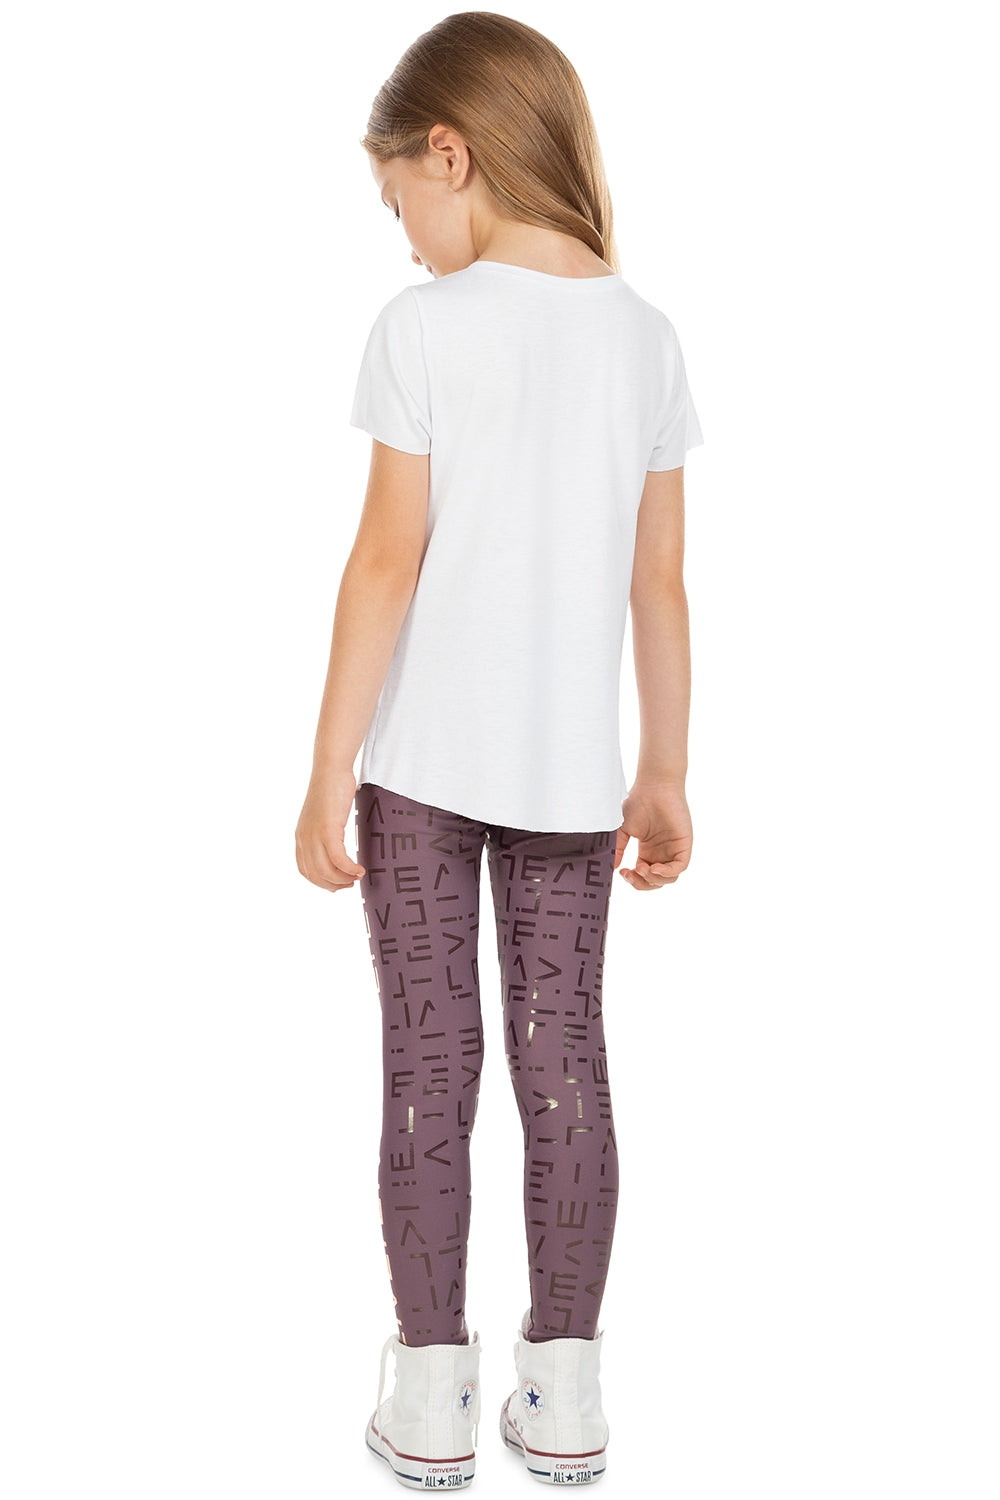 LIVE! Icon Lux Kids Legging 2